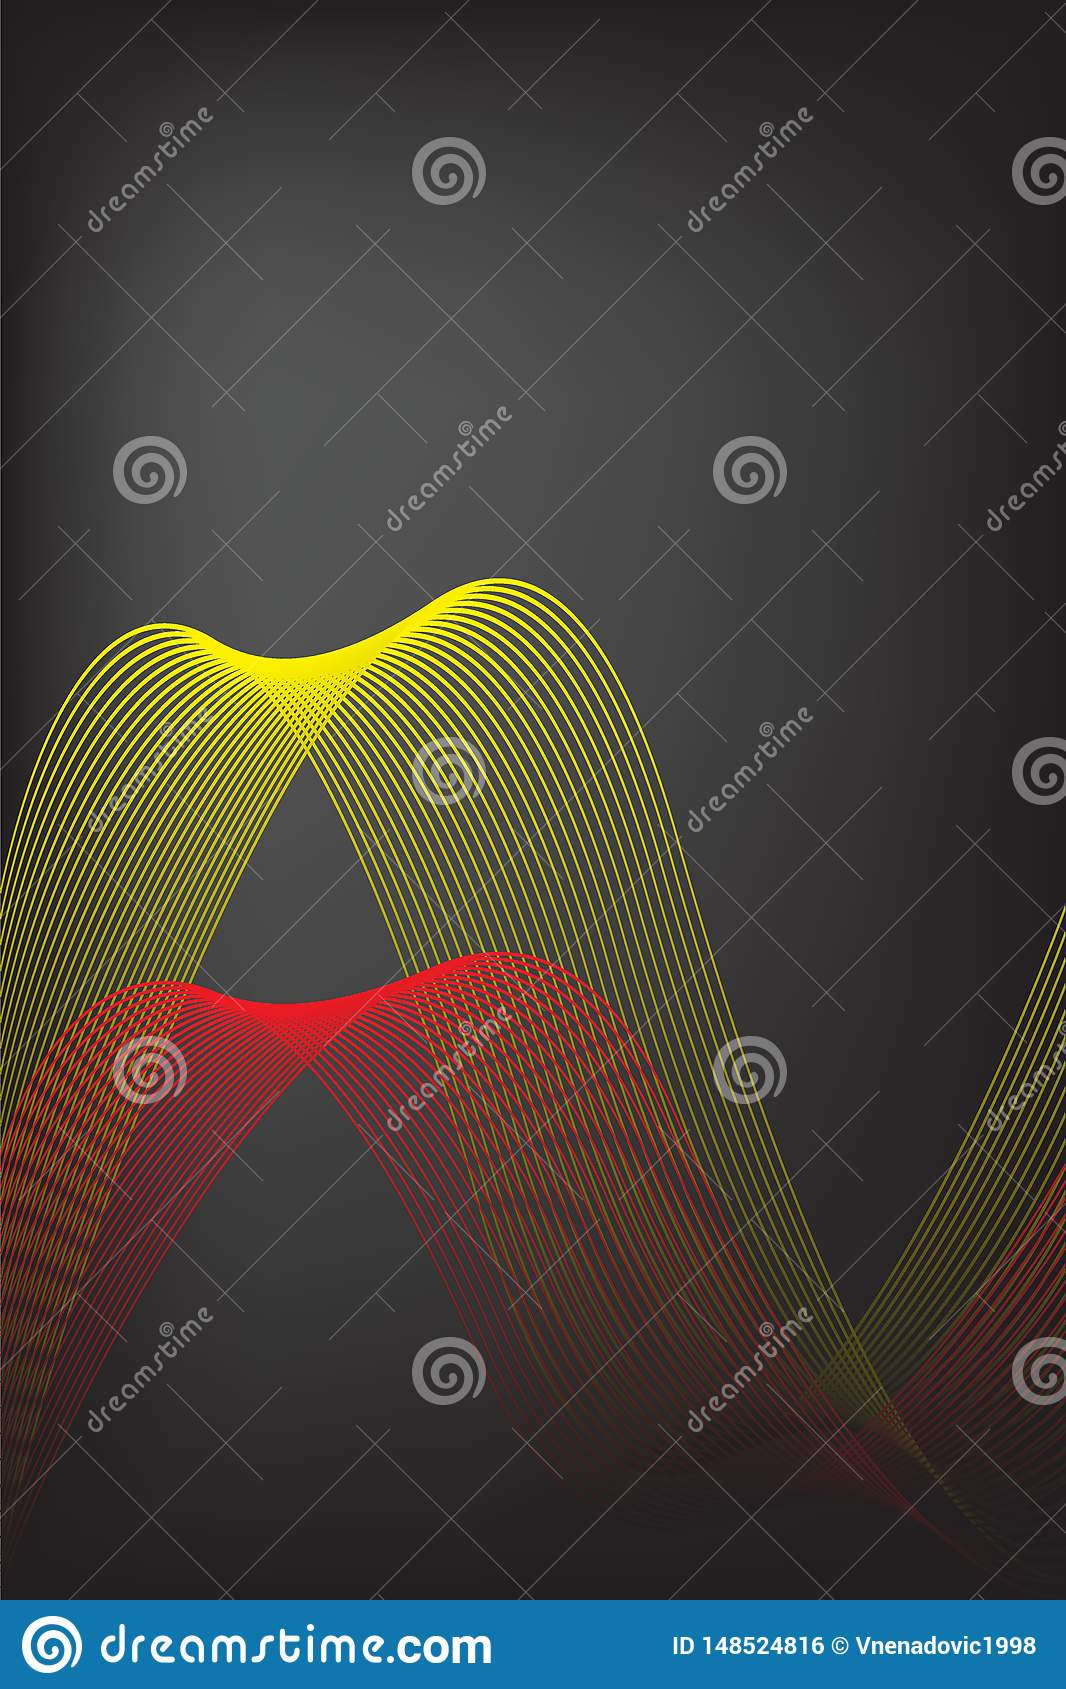 Abstract yellow and red line with black blur background. Brochure design, front page template vector graphic illustration.